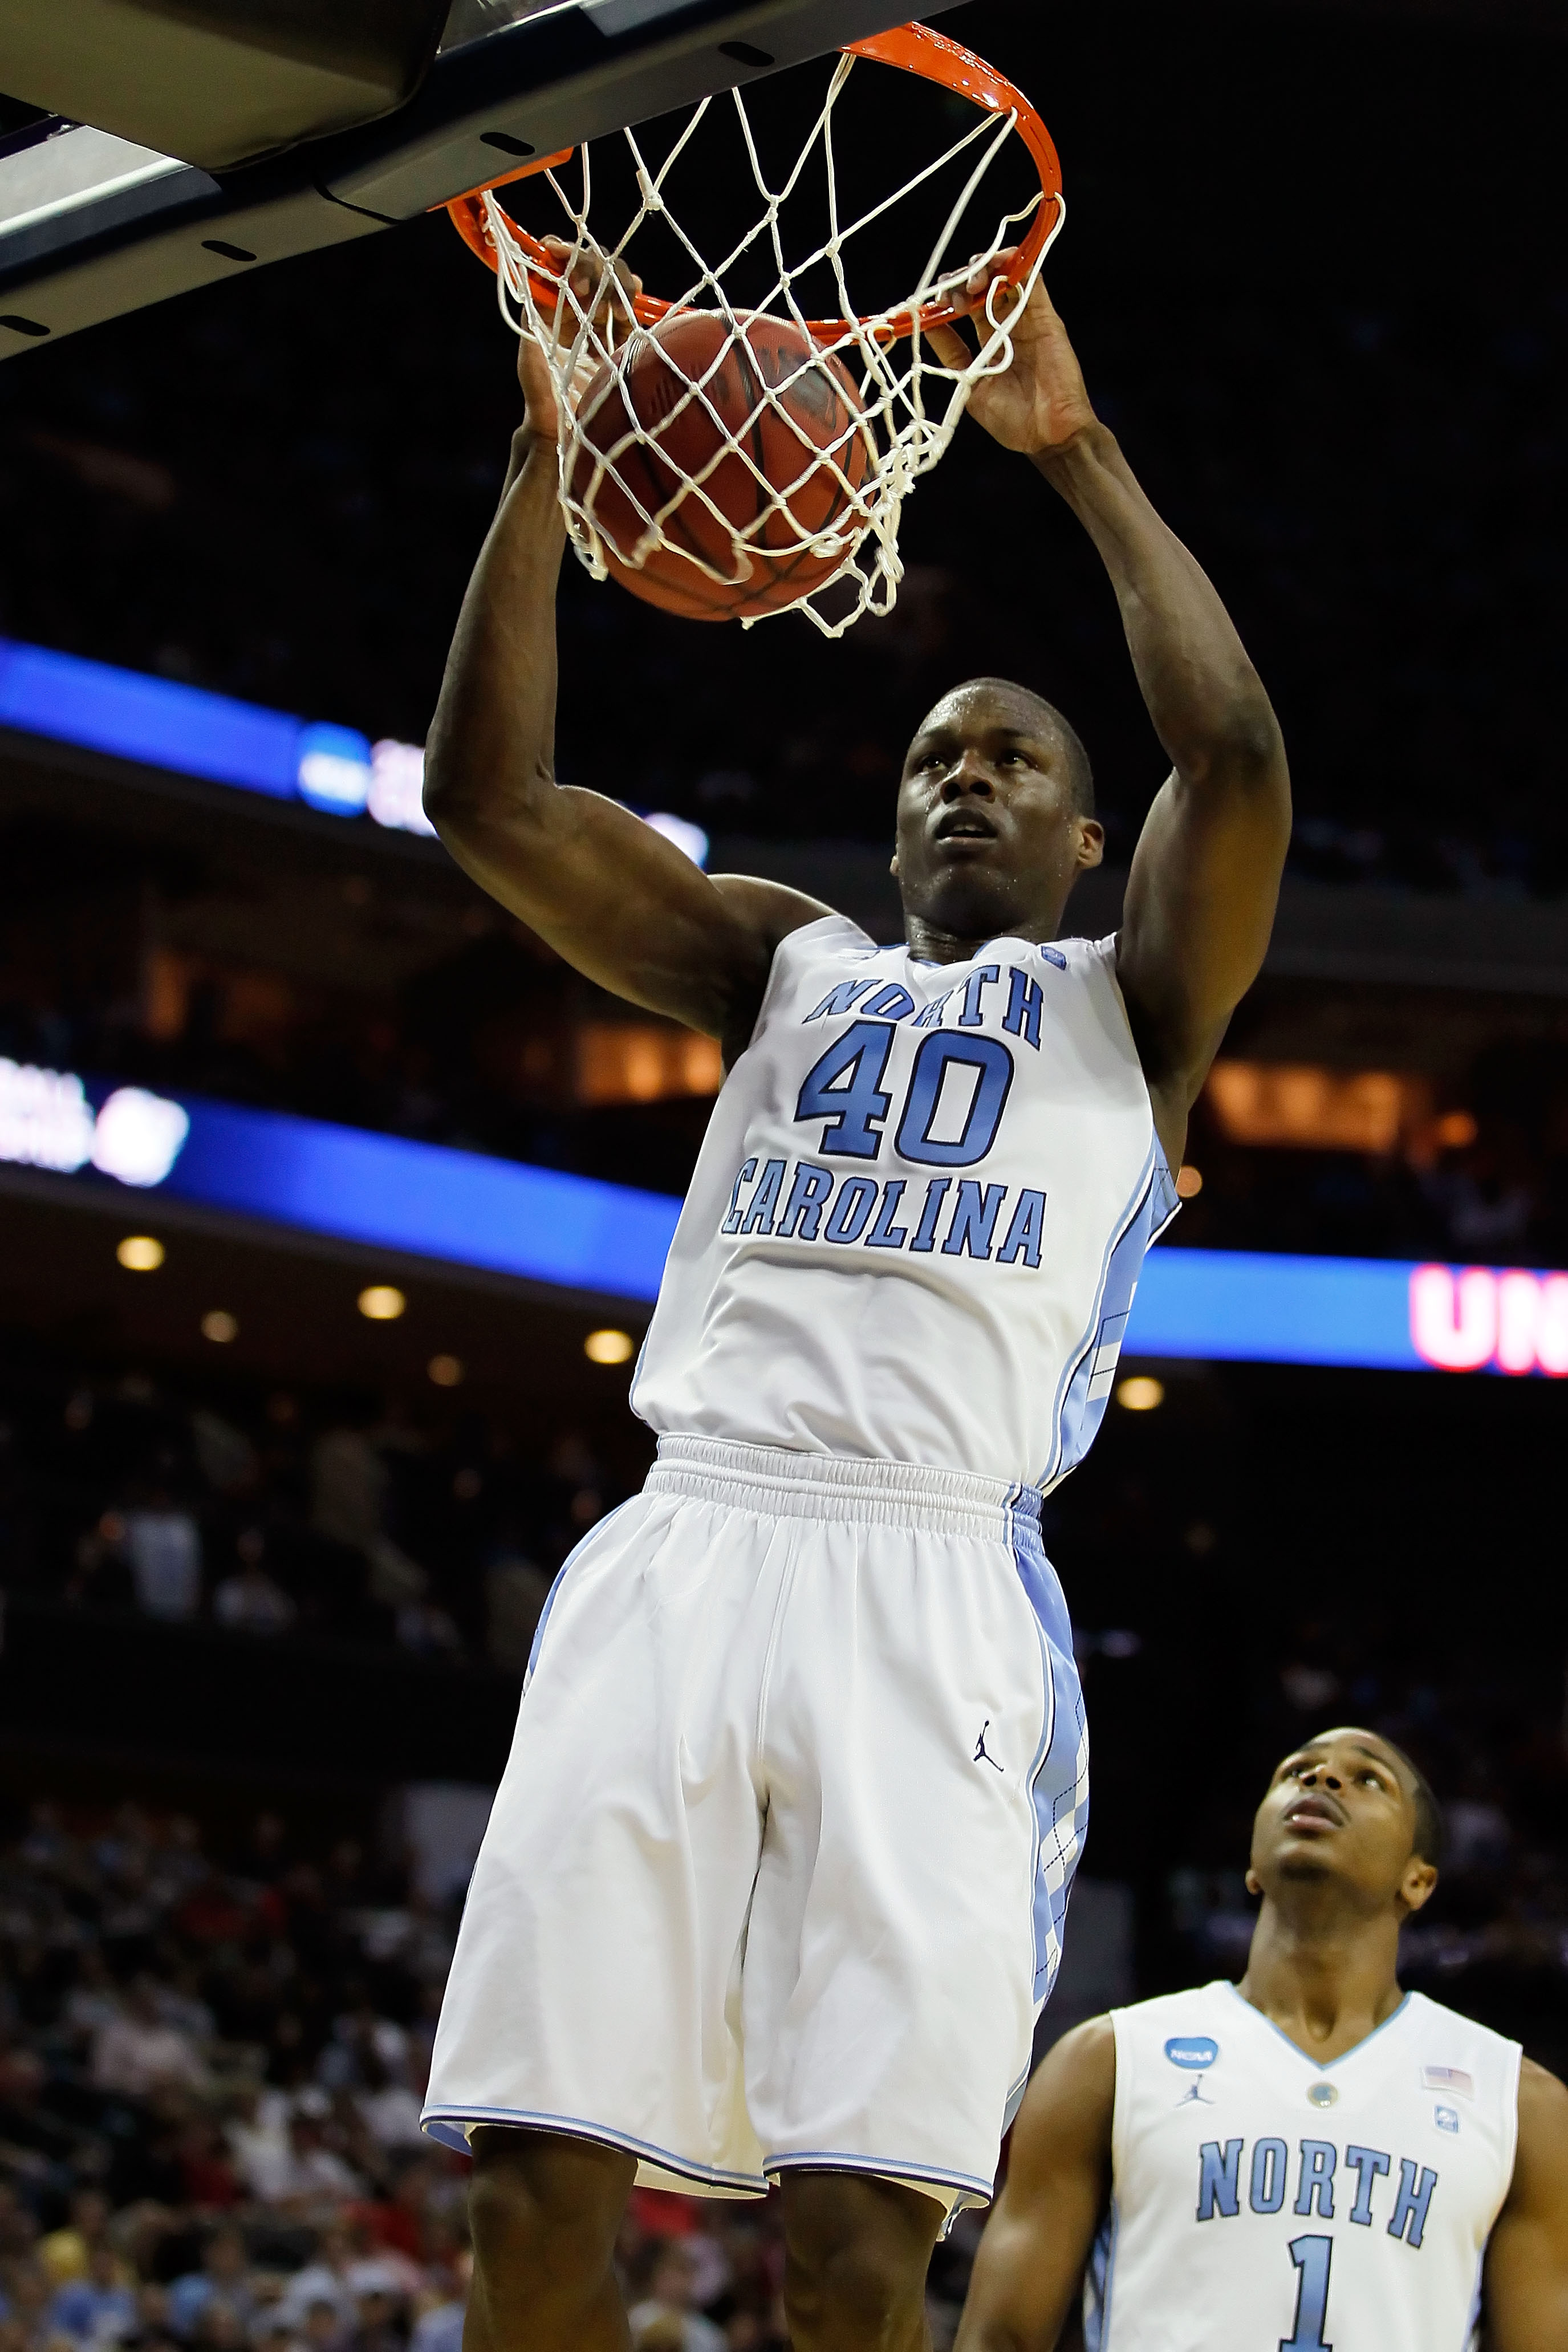 CHARLOTTE, NC - MARCH 18:  Harrison Barnes #40 of the North Carolina Tar Heels dunks the ball in the first half while taking on the Long Island Blackbirds during the second round of the 2011 NCAA men's basketball tournament at Time Warner Cable Arena on M